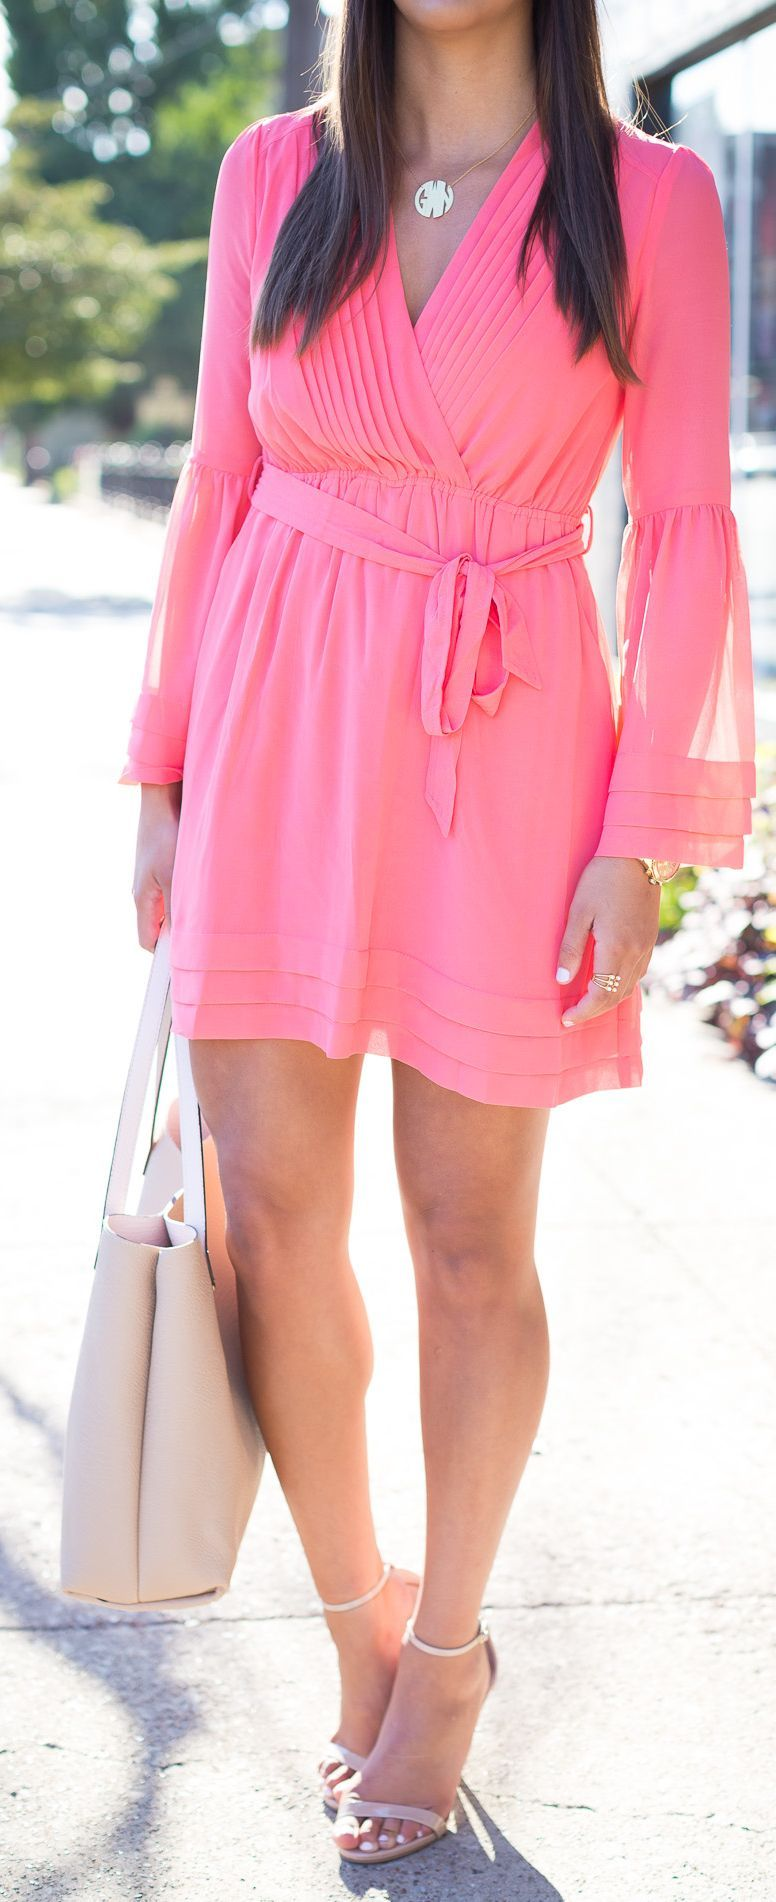 A Southern Drawl Pink Chiffon Dress